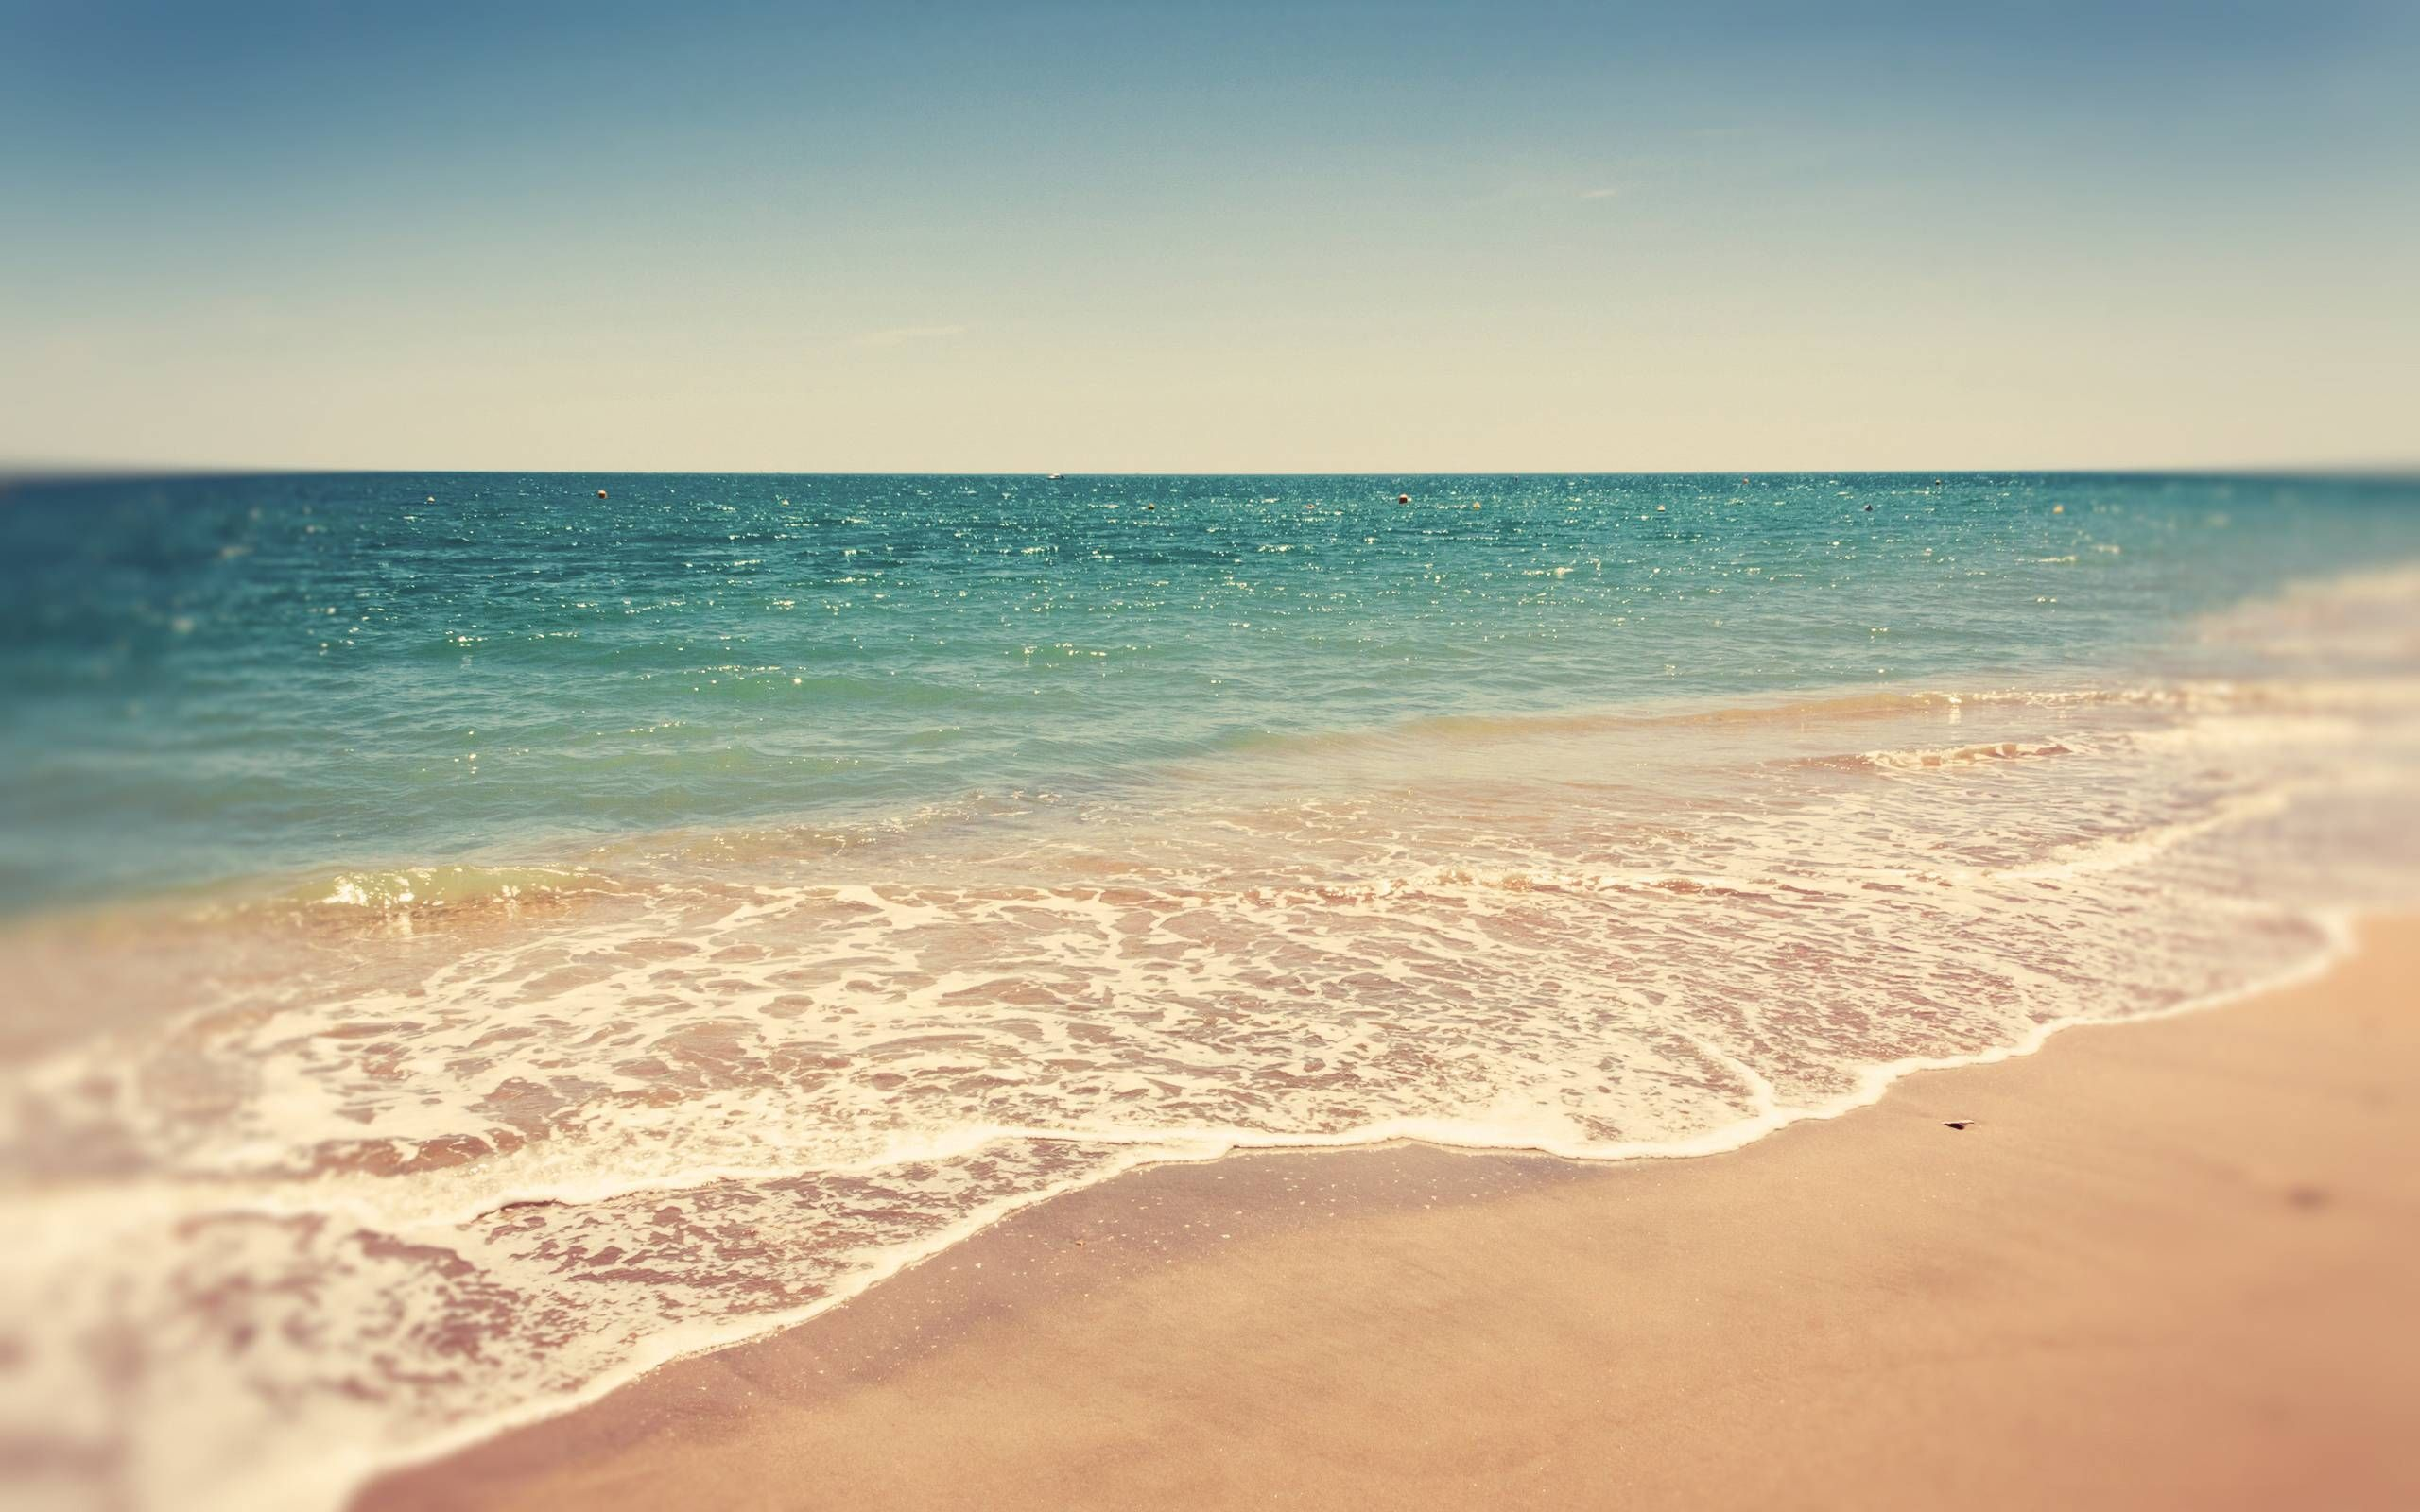 Summer Beach Wallpaper Android Apps On Google Play Beach Tumblr Summer Beach Wallpaper Beach Wallpaper